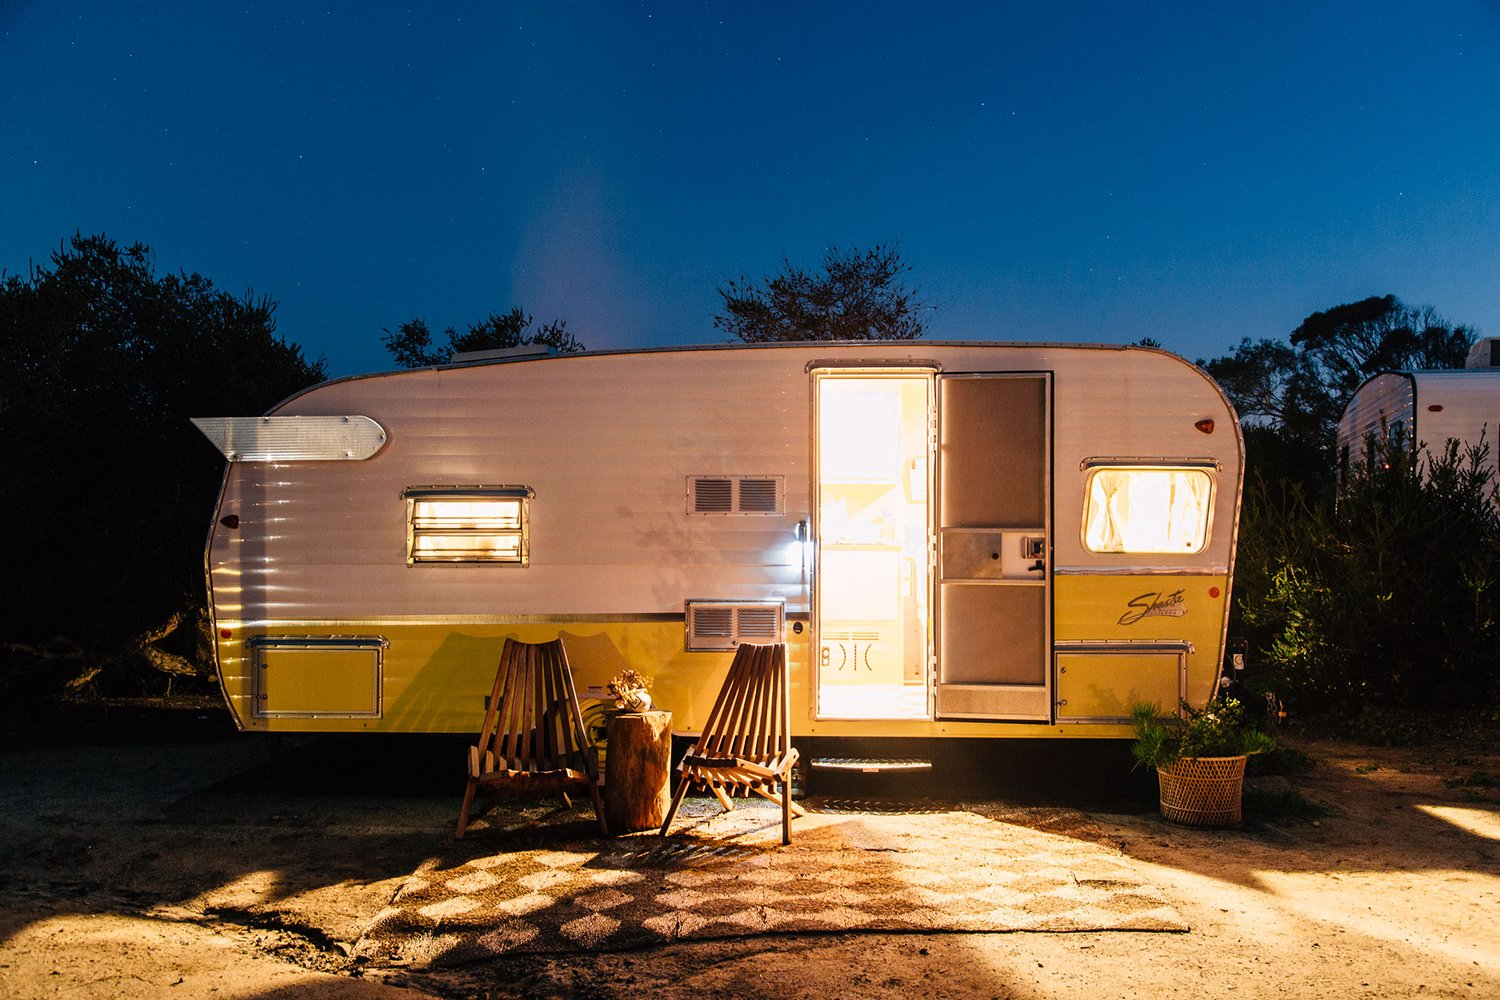 Photo 1 of 11 in The Holidays: A Retro Camp Community On Southern California's Scenic Coastline